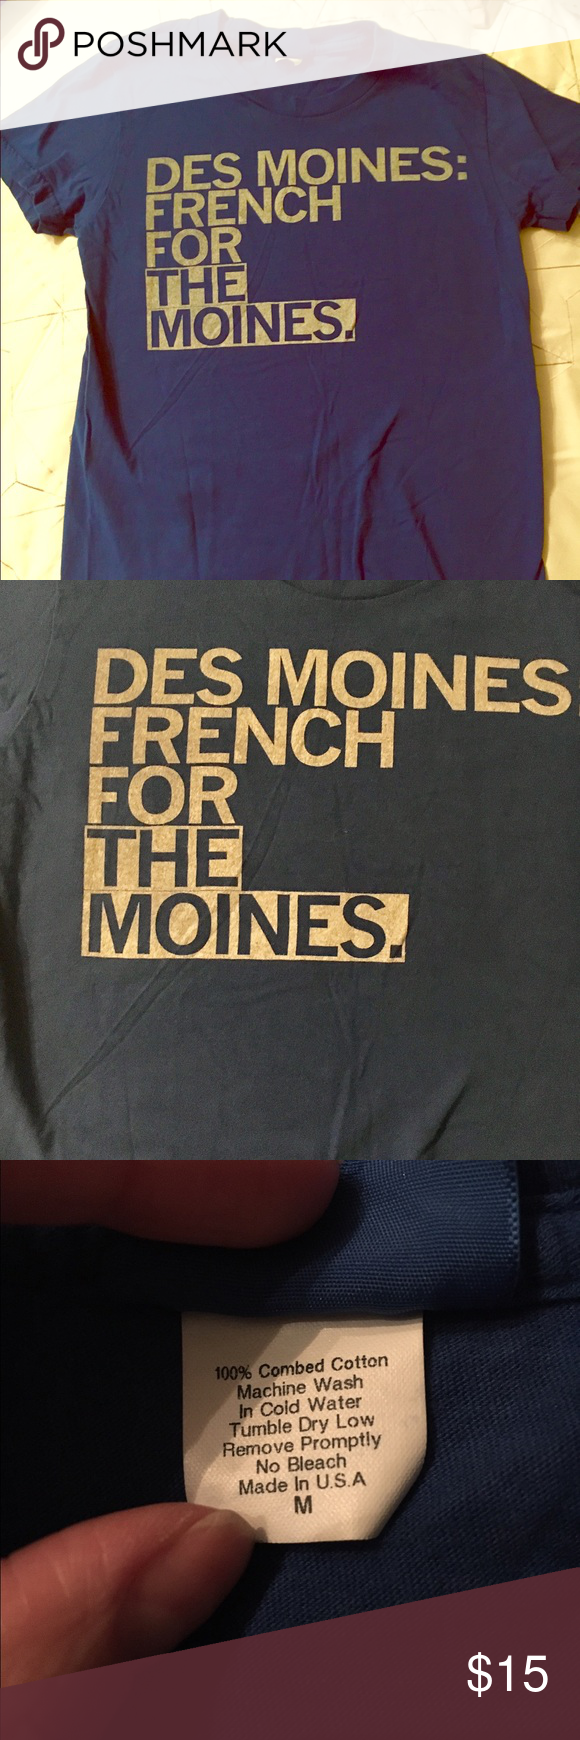 Des Moines French for the Moines tshirt Des Moines French for the Moines fitted tshirt Tops Tees - Short Sleeve | T shirt. Workout tshirts. Des moines